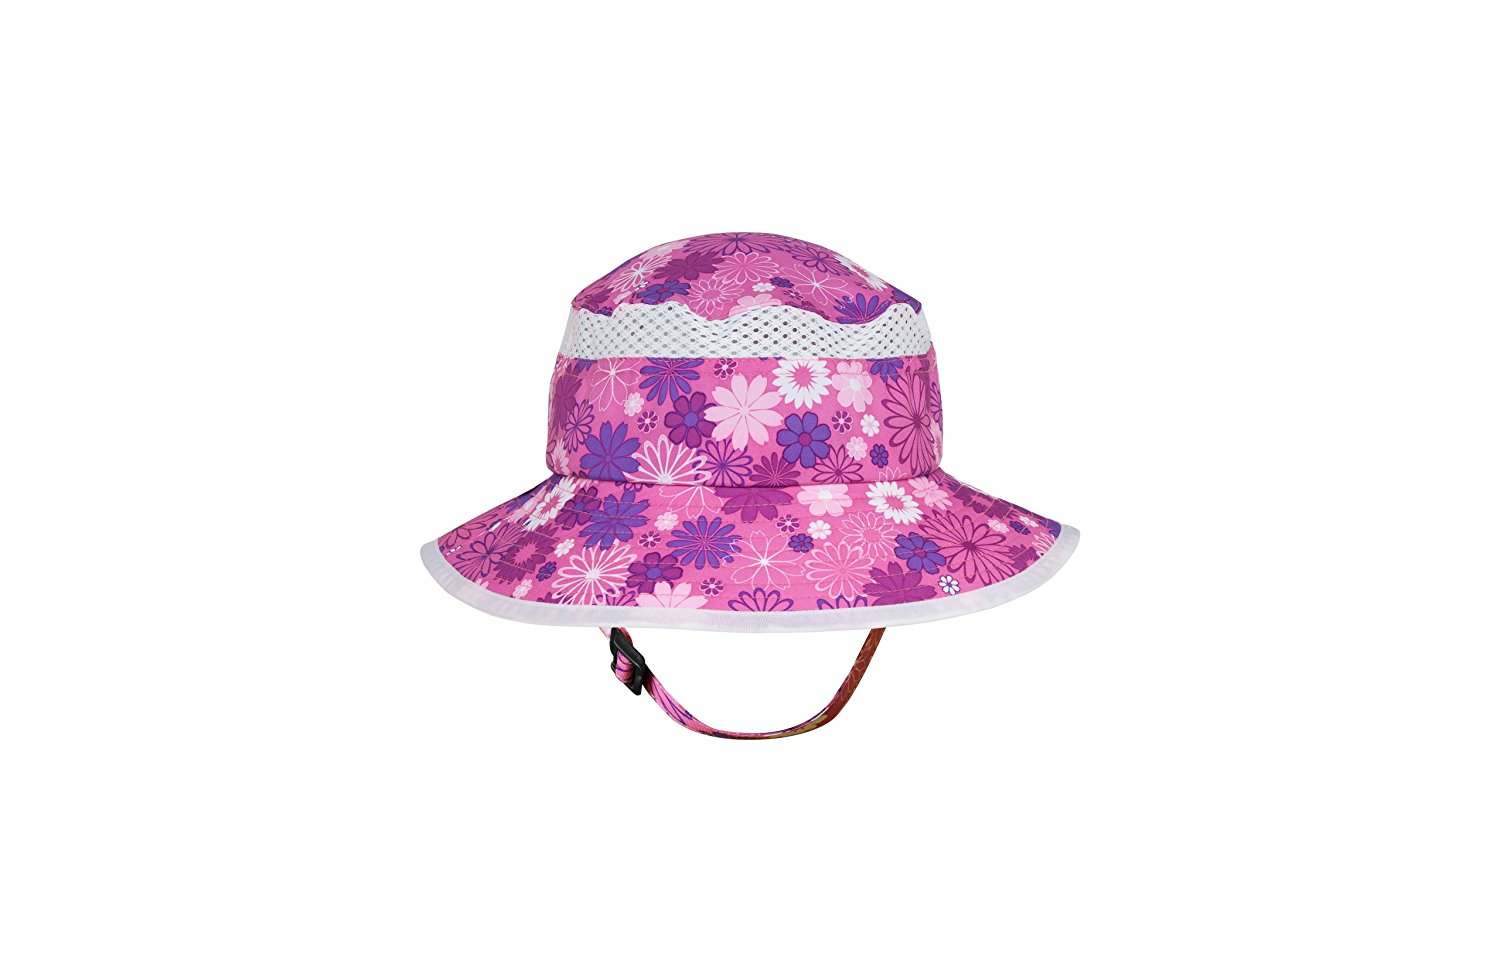 b5a14f5c2a8 Get Quotations · Sunday Afternoons Kid s Chin Strap Fun Bucket Sun Hat  (Pink Daisy